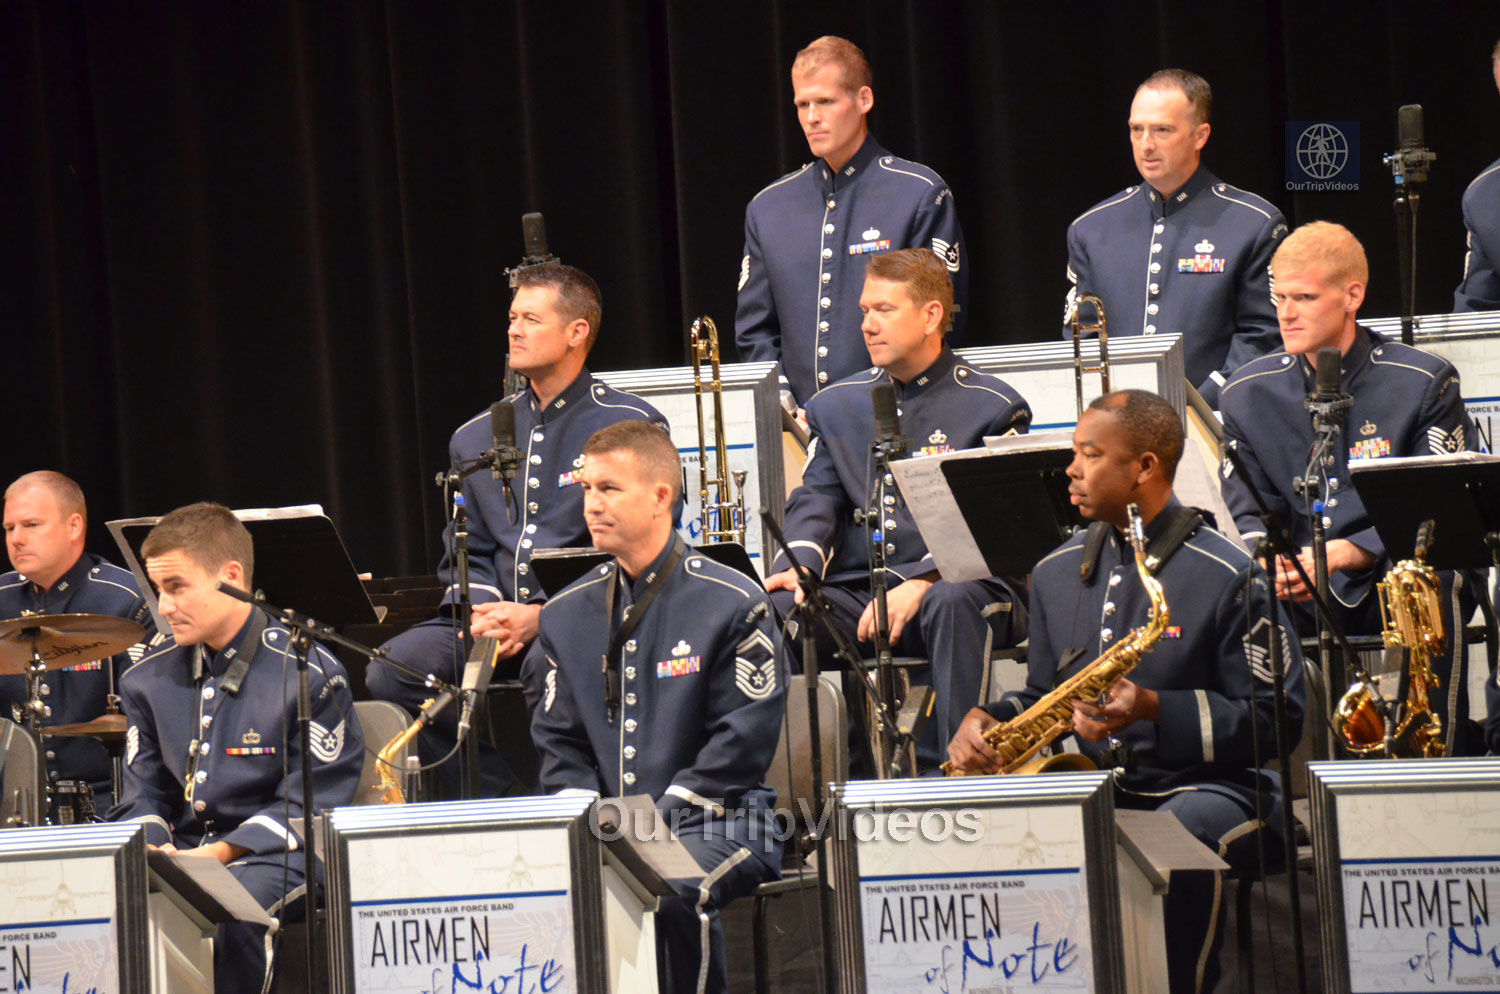 USAF Airmen of Note Live, Hayward, CA, USA - Picture 4 of 25